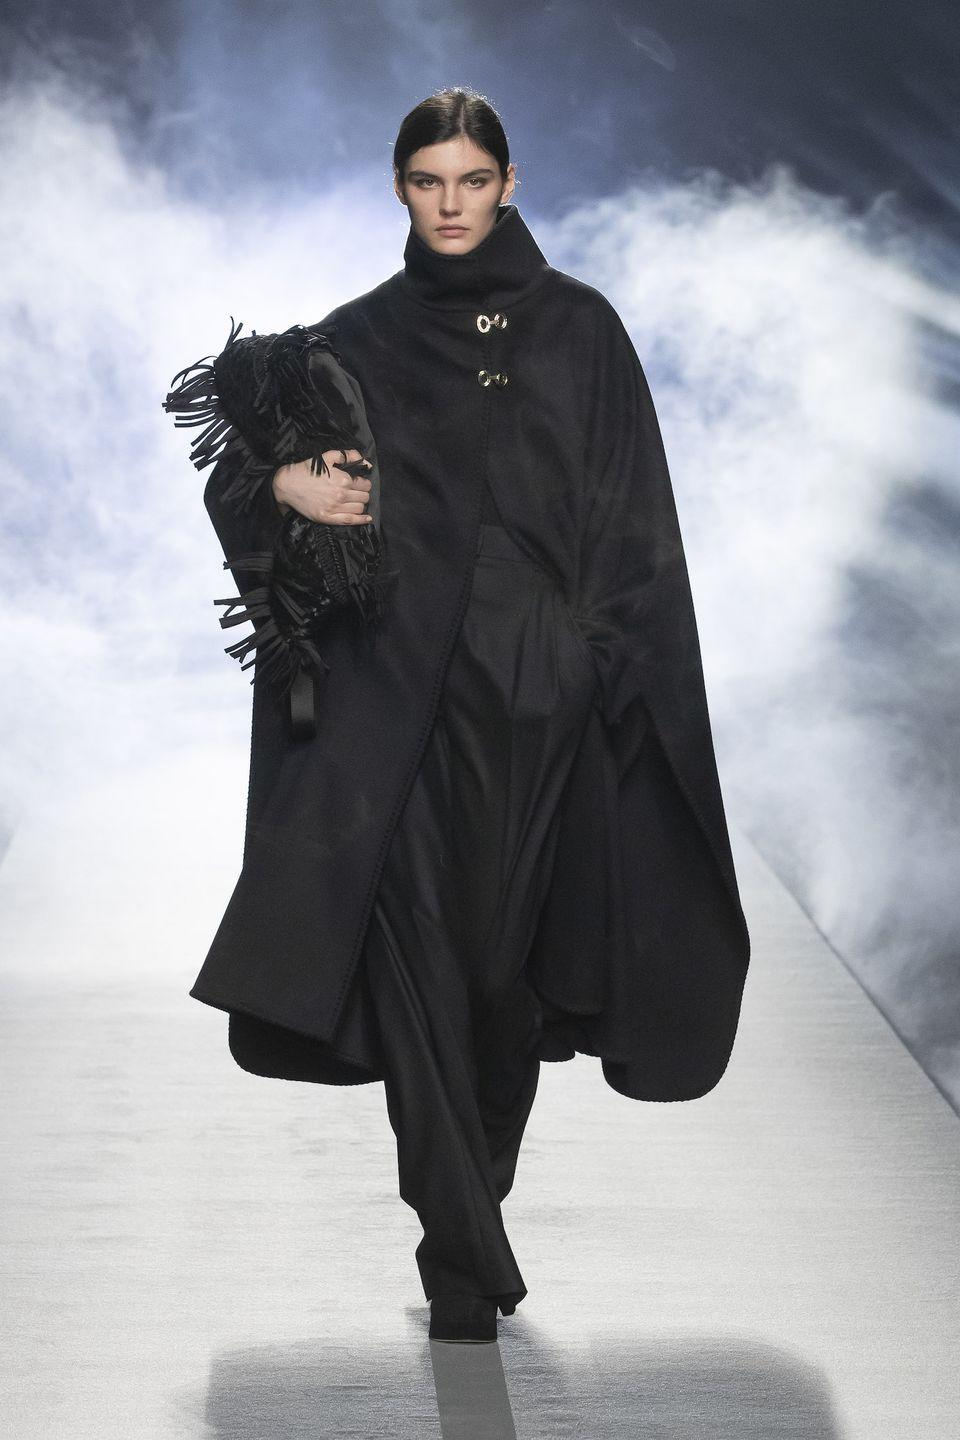 <p>All things comfy and cozy reached new heights in Alberta Ferretti's fall 2021 collection. The Italian designer, via video of a runway show, presented a lineup of cold-weather staples—blanket capes, shearling coats, cashmere sweaters, turtlenecks, and suede trousers—that, though roomy in cut, were tailored with precision and featured hand-stitched details. Ferretti started with black and charcoal-gray hues, gradually adding flesh tones, pine green, mustard yellow, robin's-egg blue, and shimmering gold. The overall vibe was relaxed minimalism with a dose of glamour. And though known primarily for being a red-carpet favorite, her recent offering proved that she is equally adept in creating luxe, no-fuss daywear. —<em>Barry Samaha </em></p>